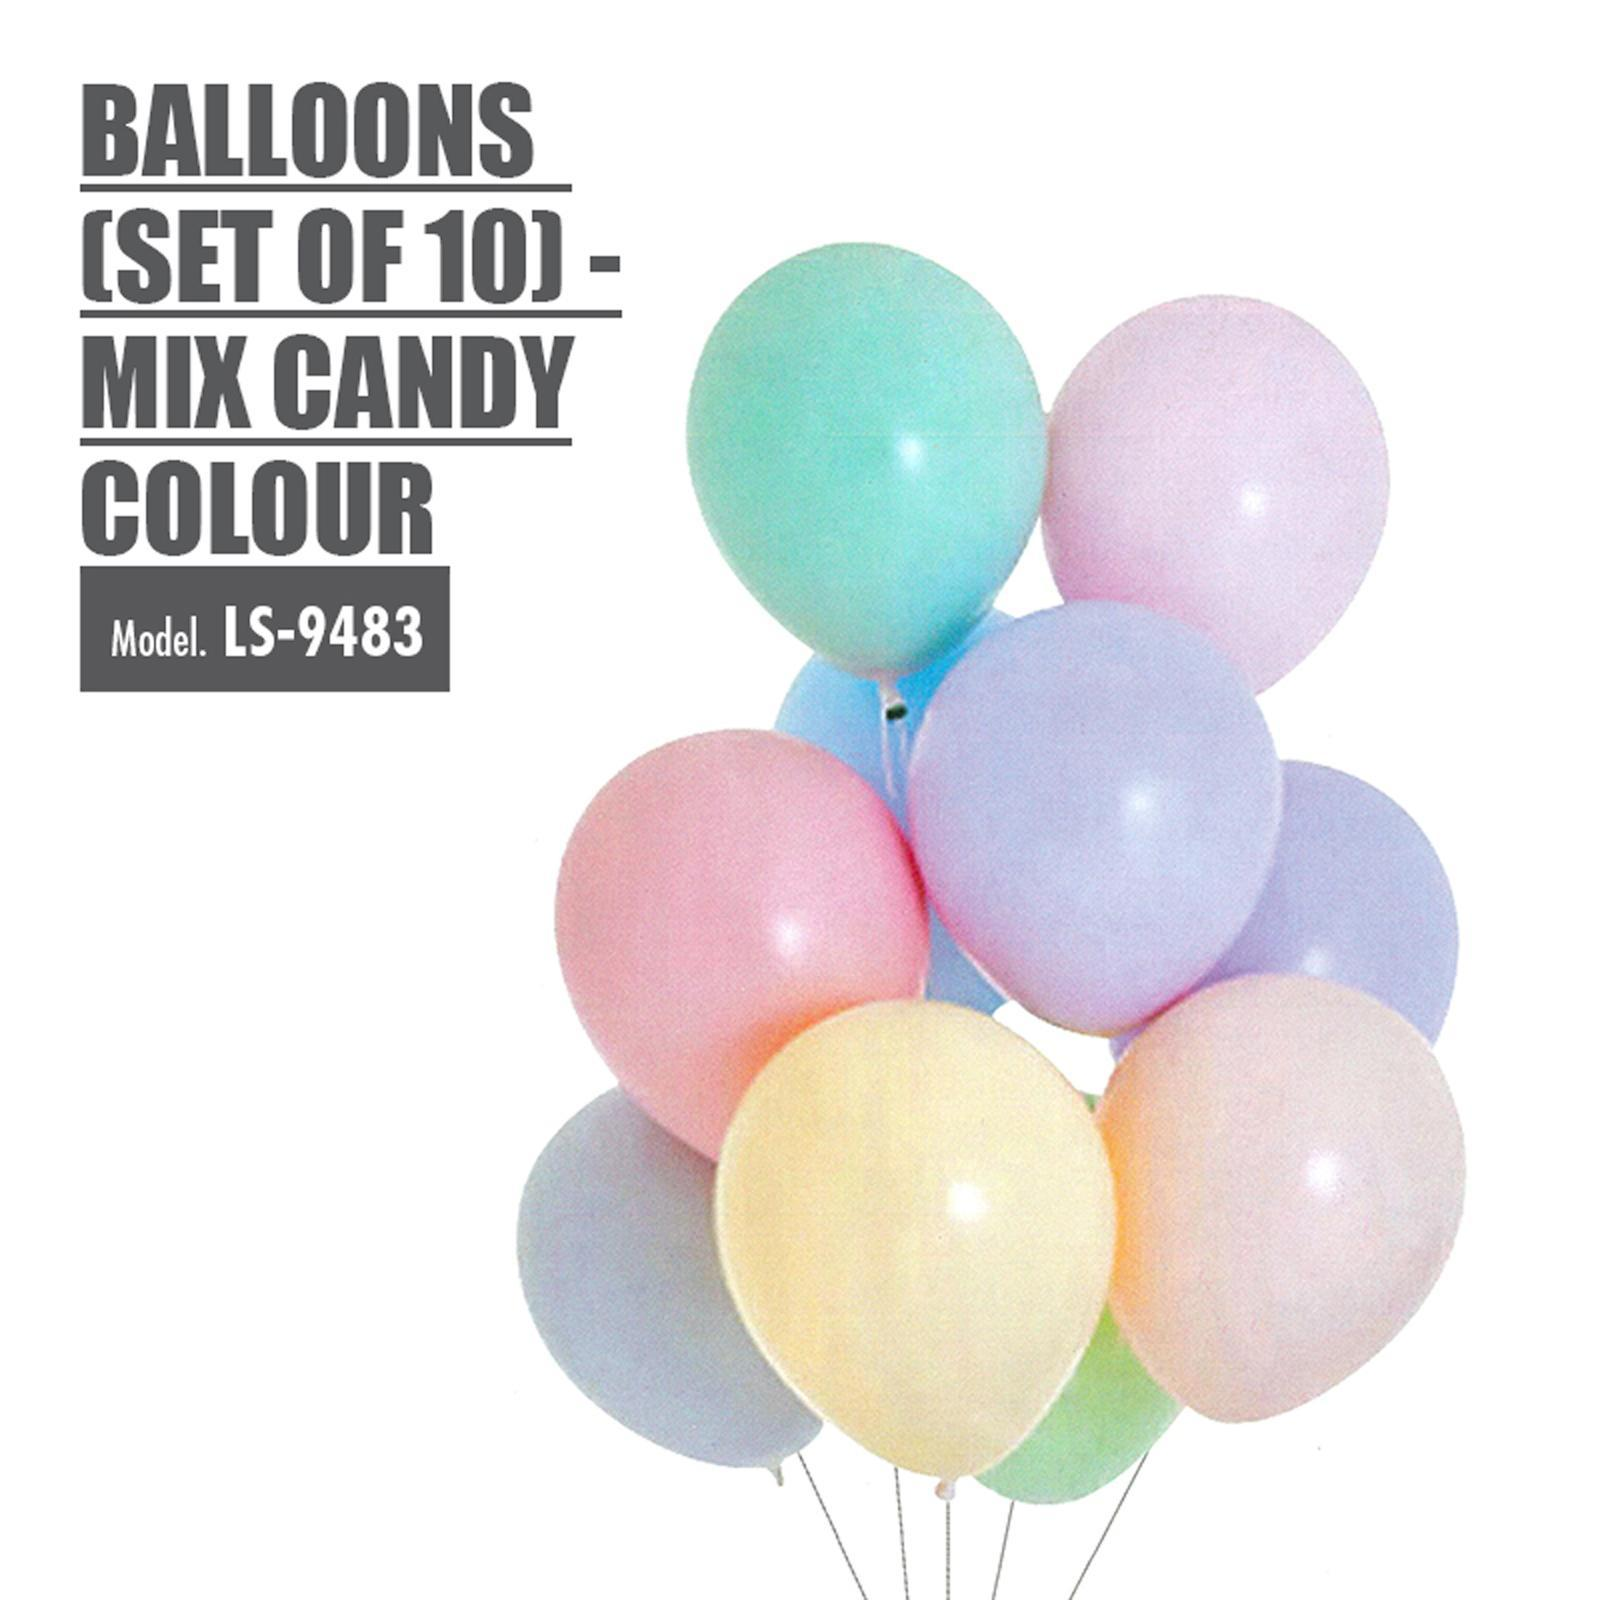 HOUZE Balloons (Set Of 10) - Mix Candy Color